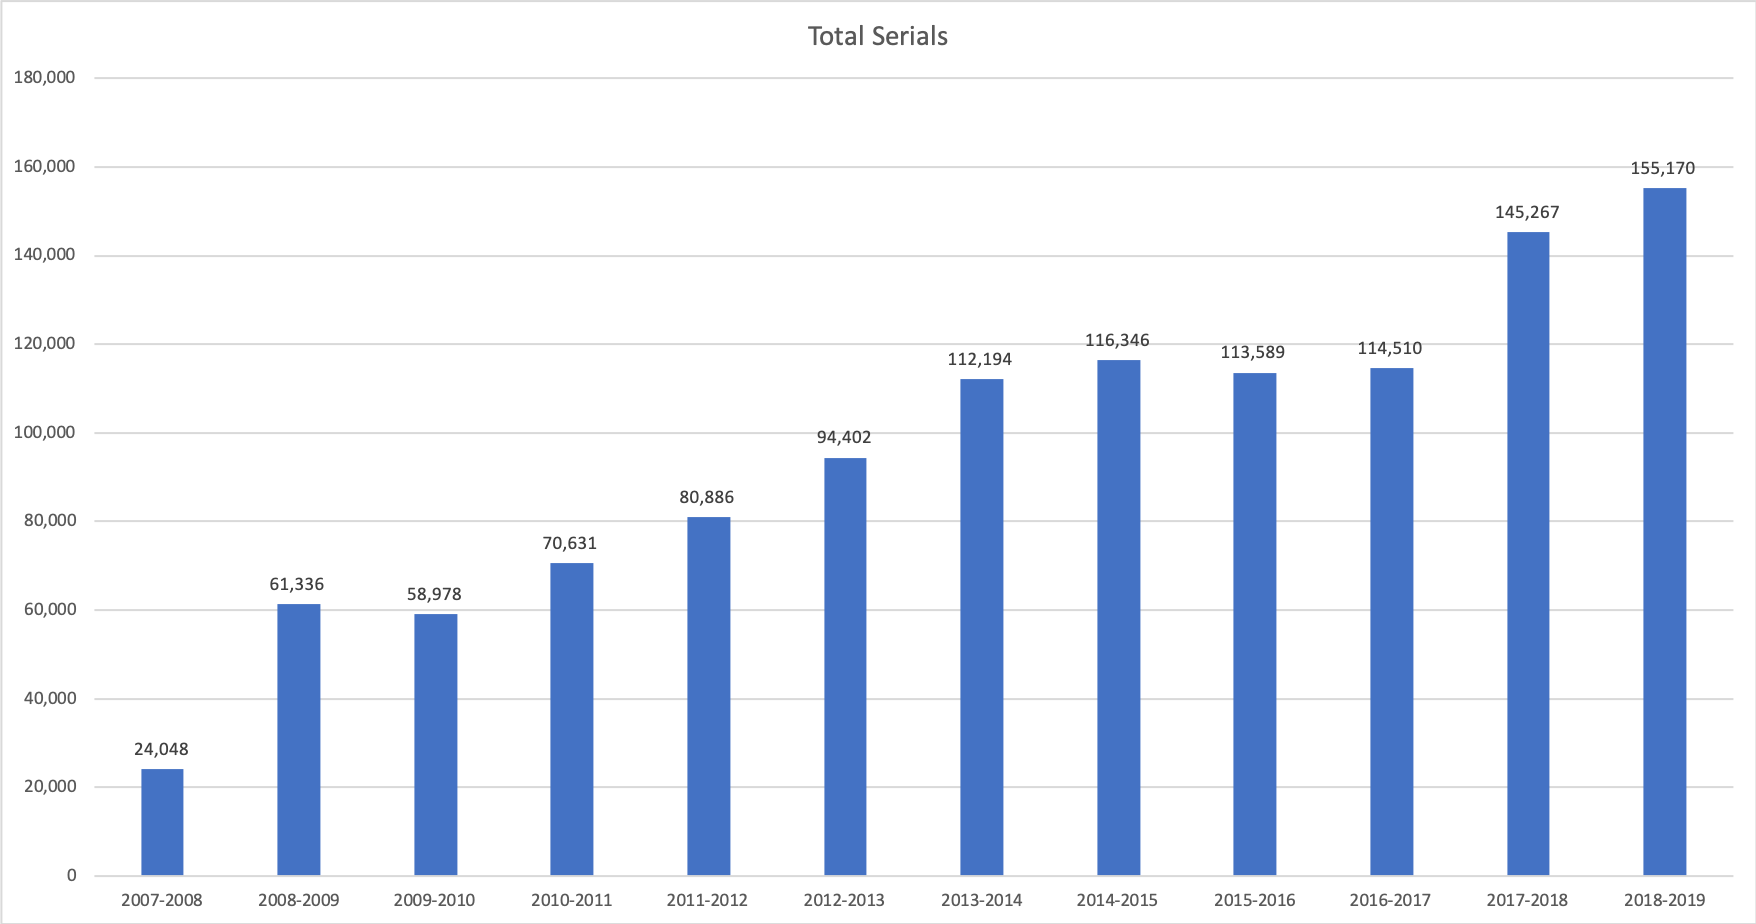 Total Serials Held by UC Merced Library